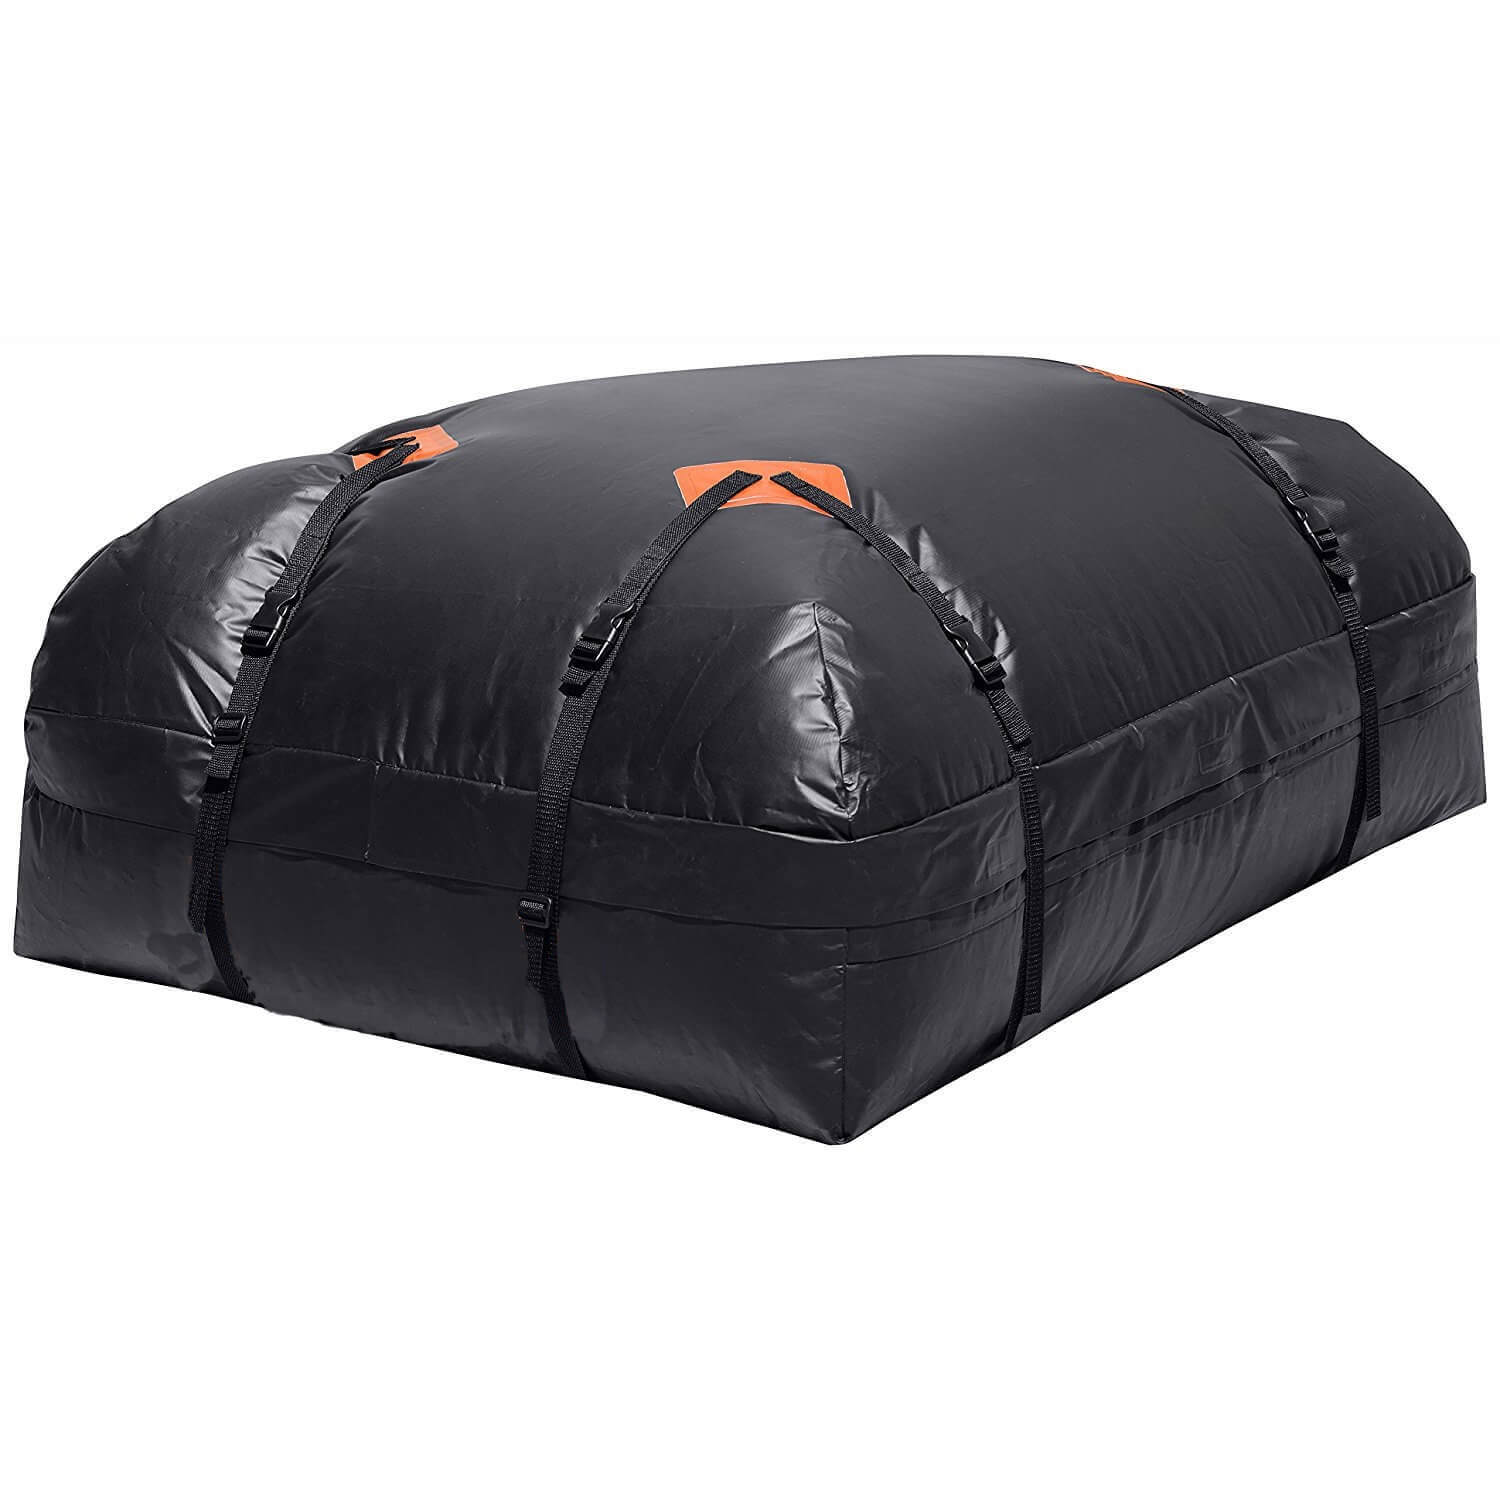 Easy to Install Cargo Roof Bag Waterproof Car Top Carrier ...